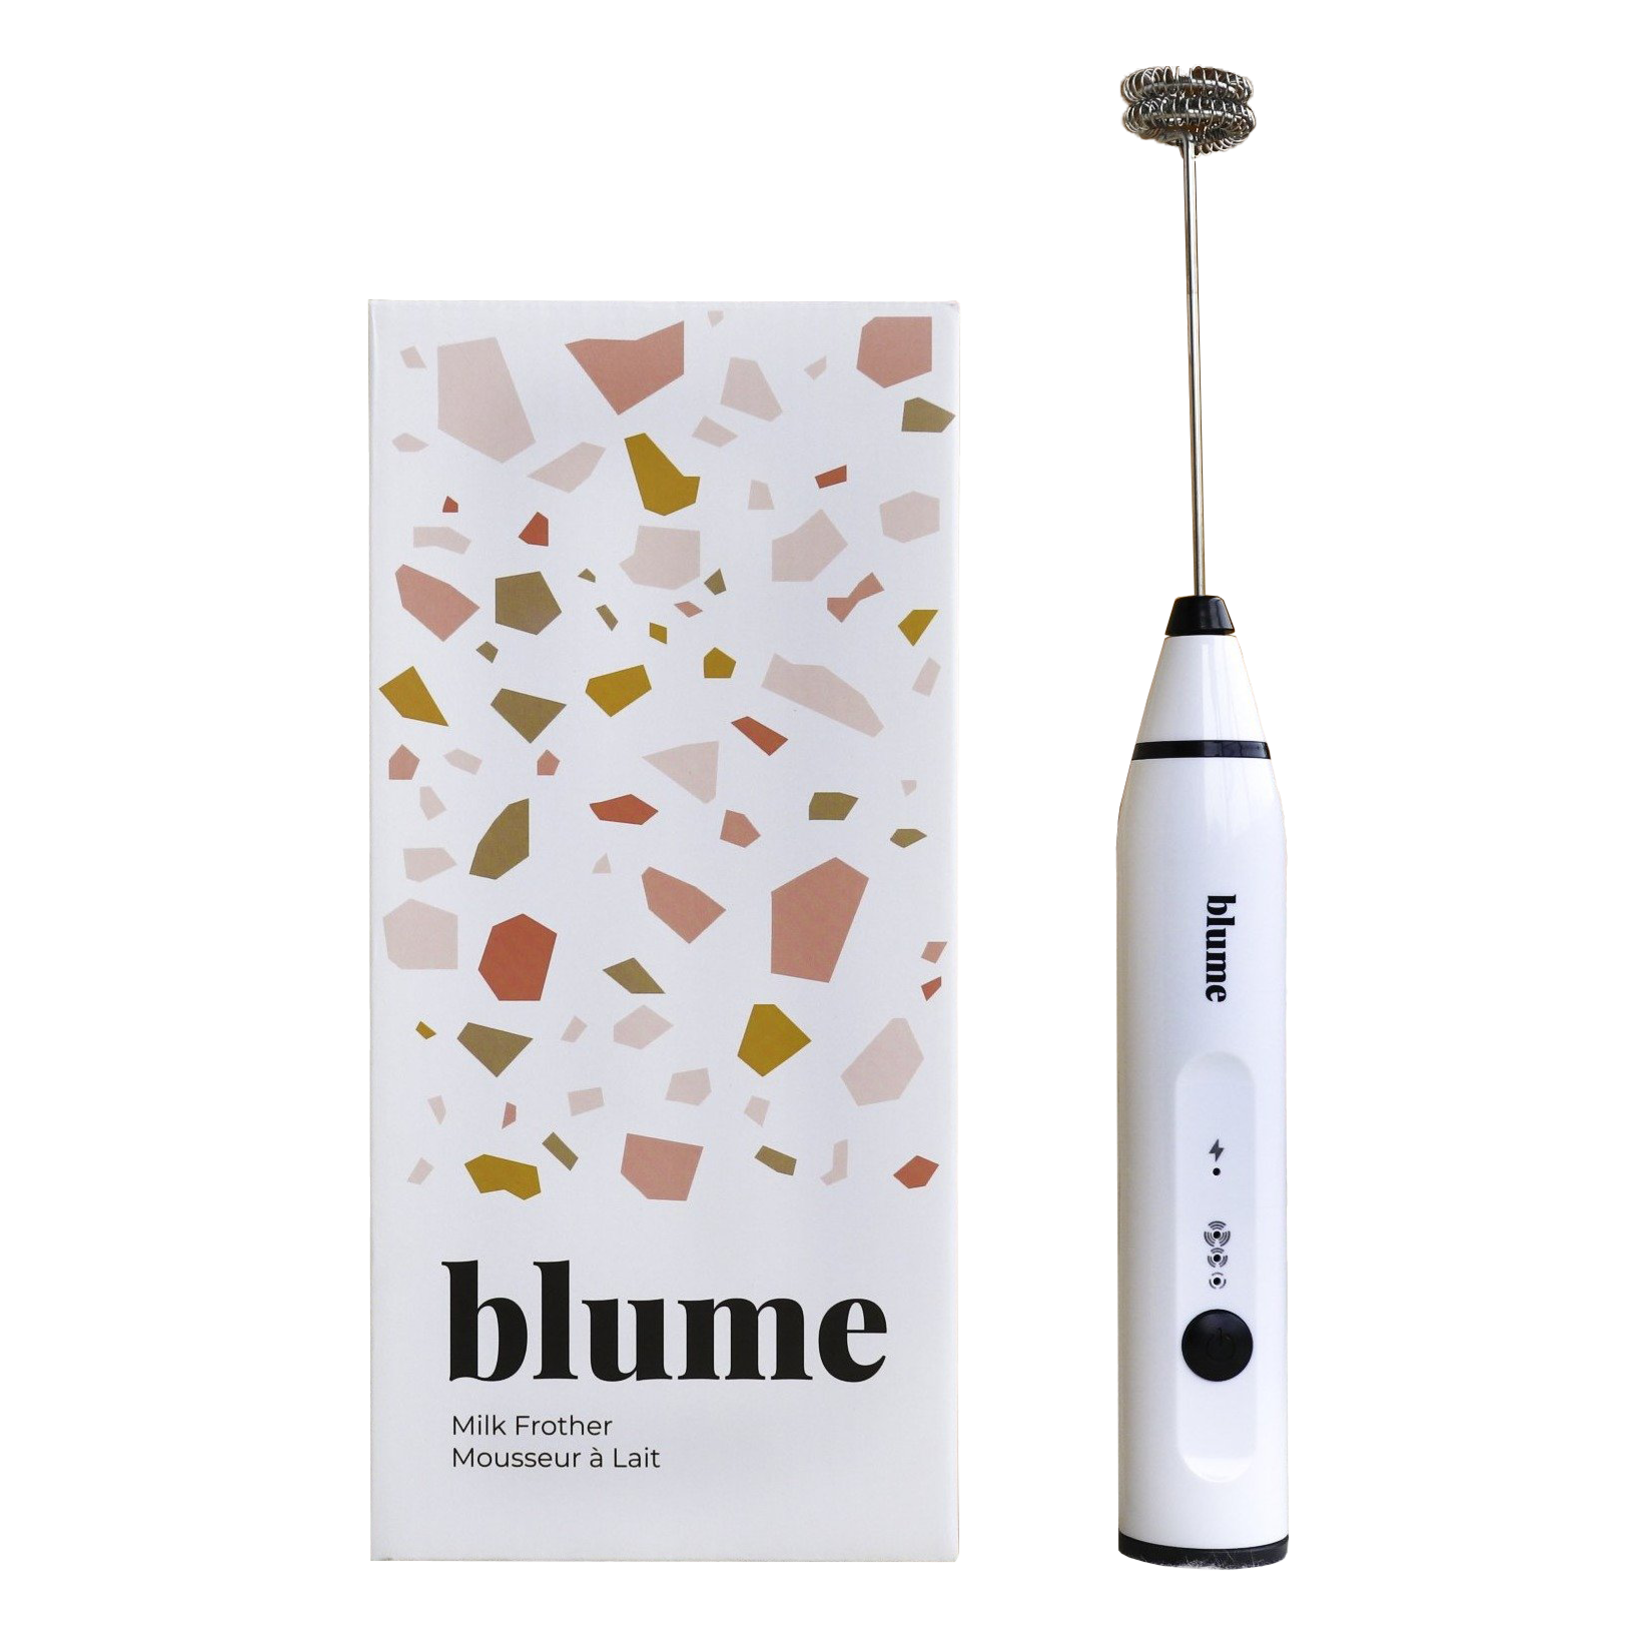 Blume Milk Frother